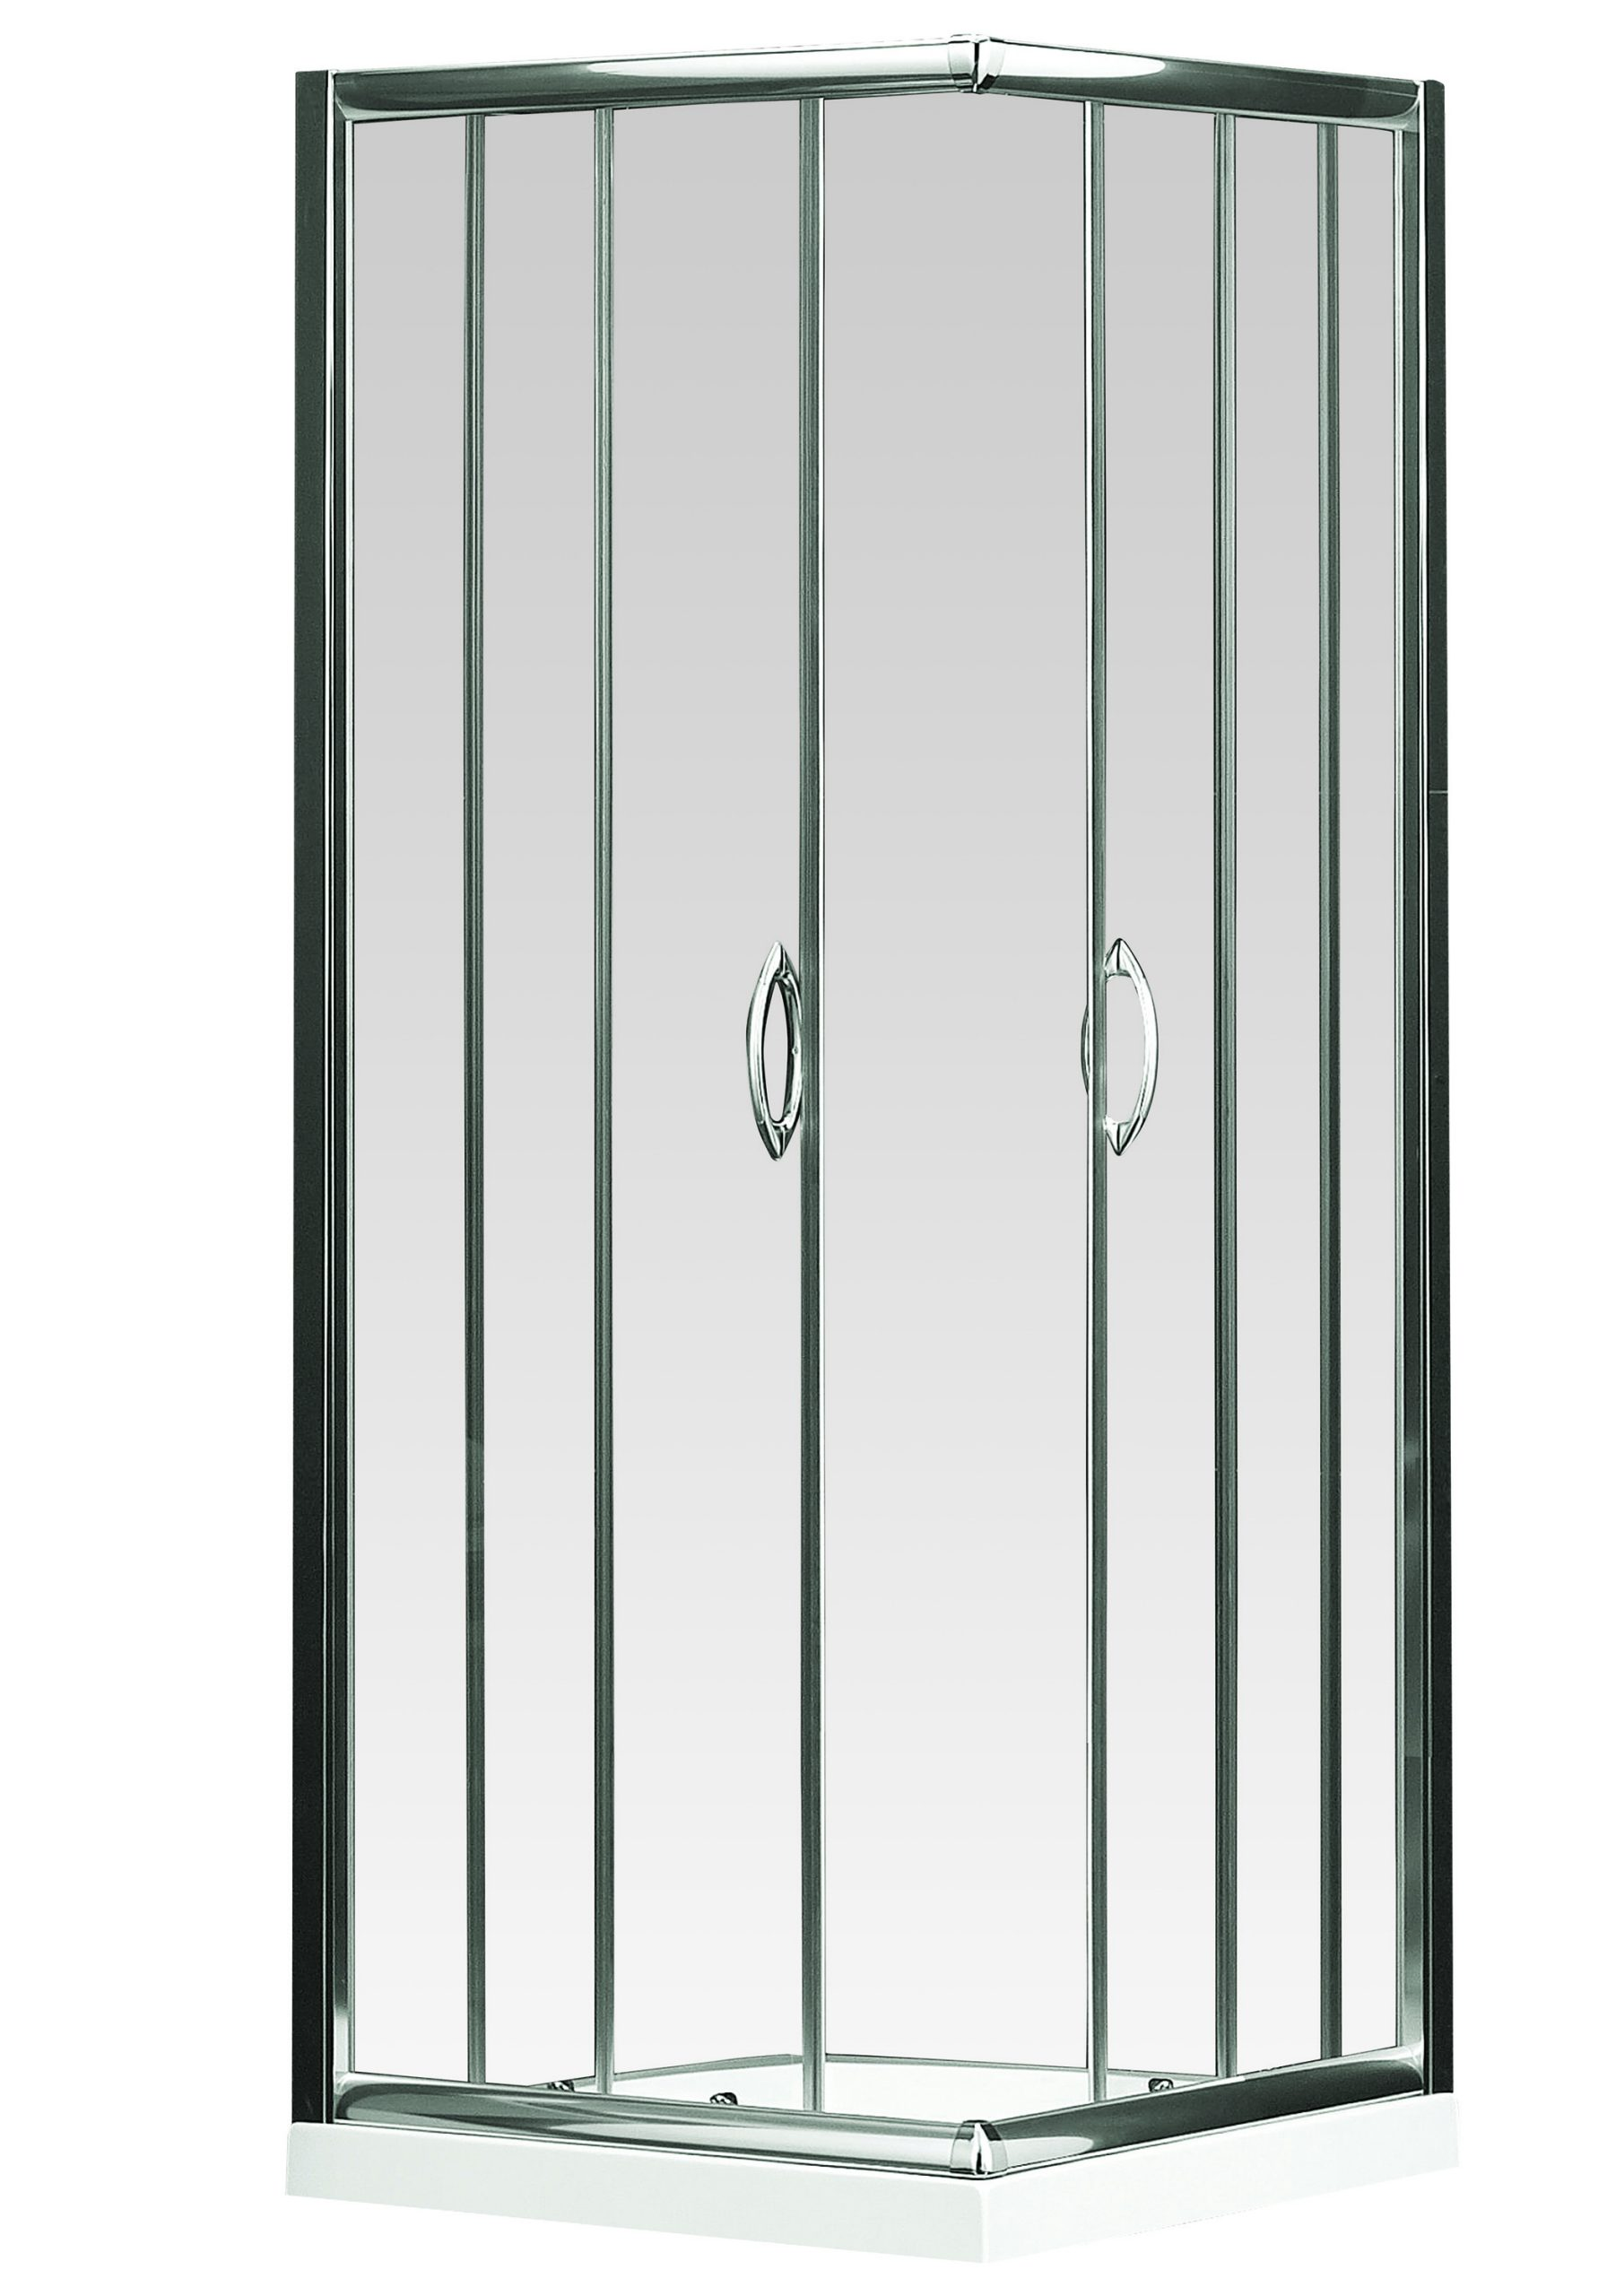 Euro Corner Entry Shower Screen